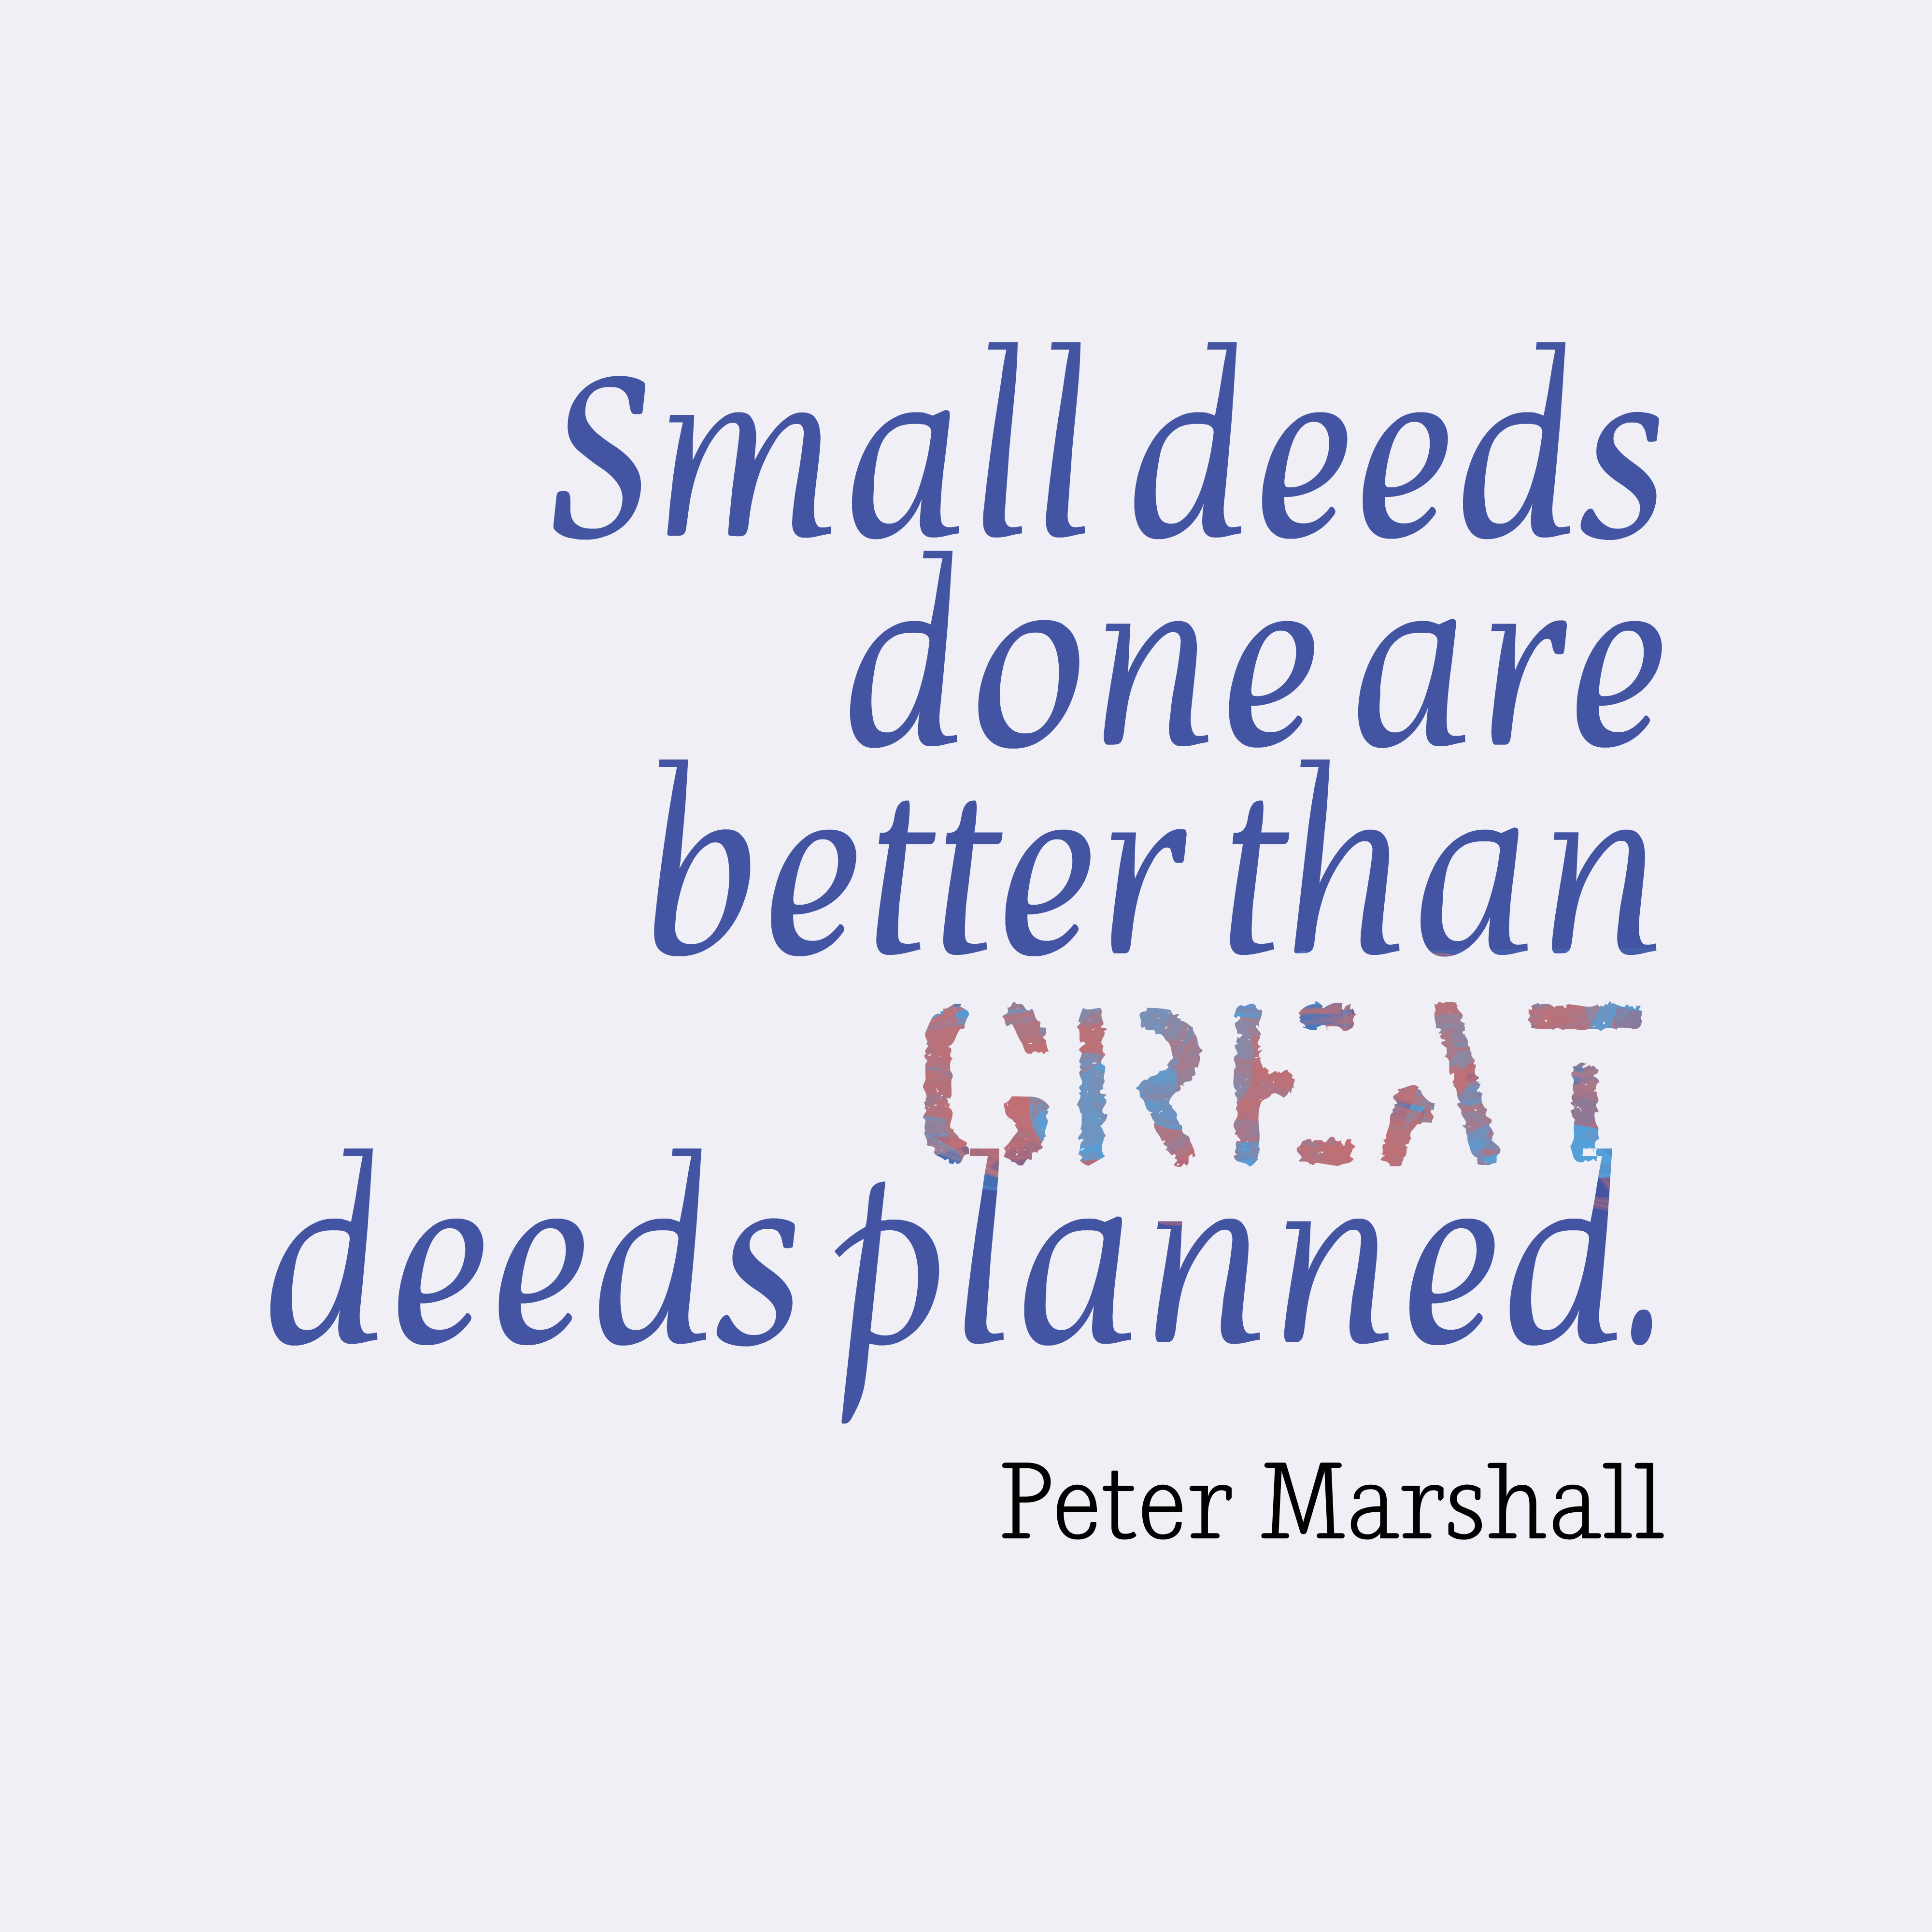 General george c marshall quotes - Peter Marshall Quote About Work